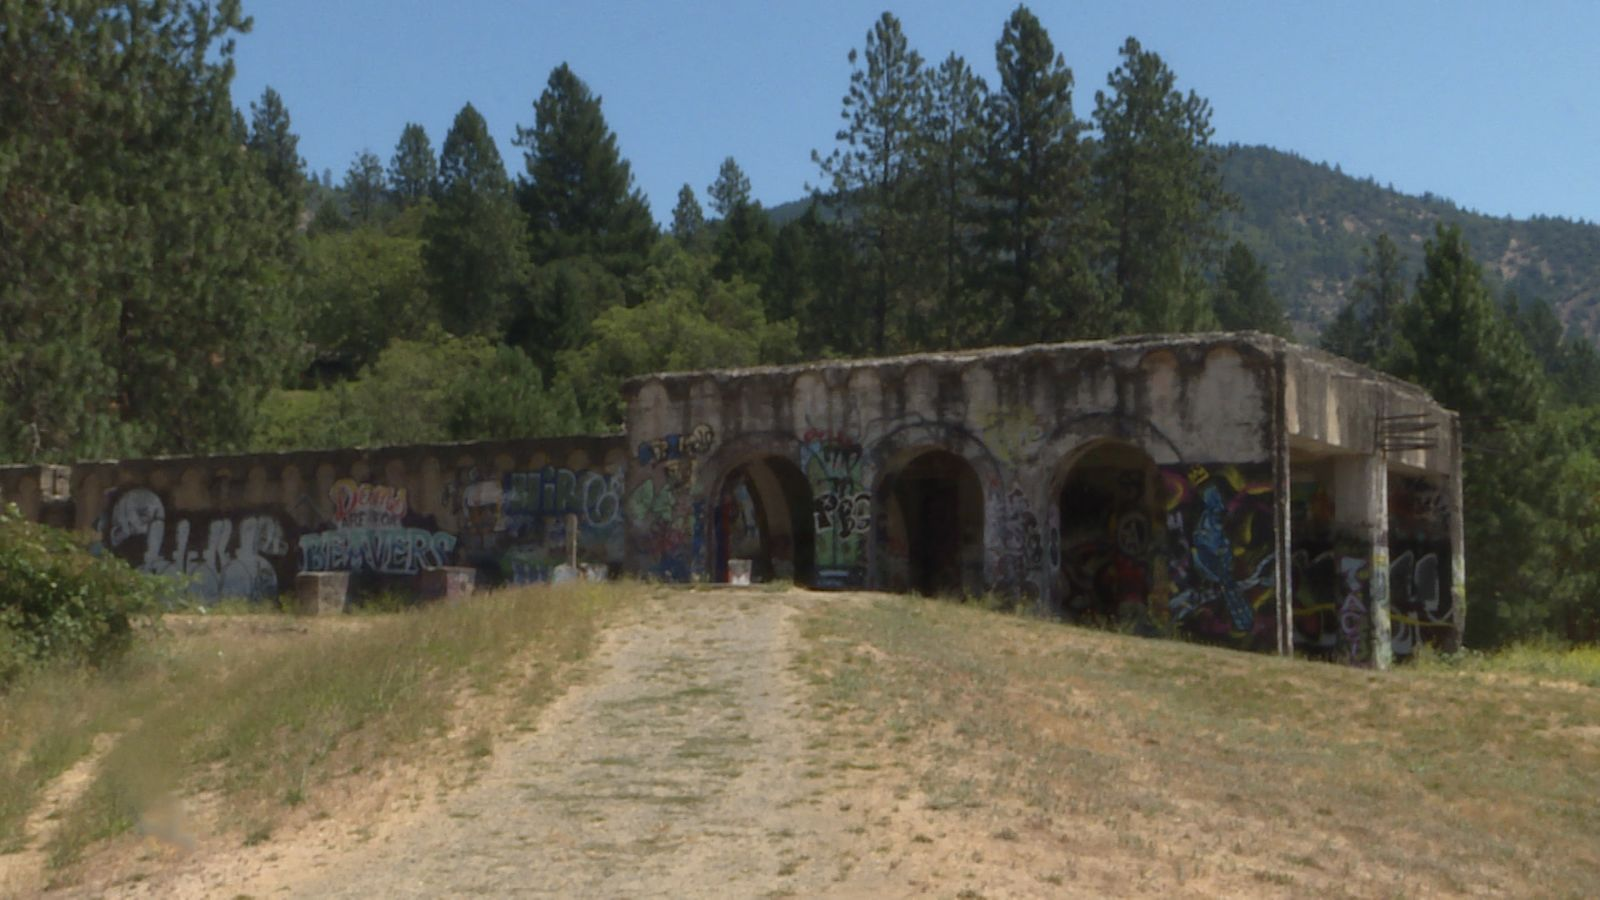 A castle in the woods.{&nbsp;} Ament Dam powerhouse. (John Stoeckl/News 10)<br>